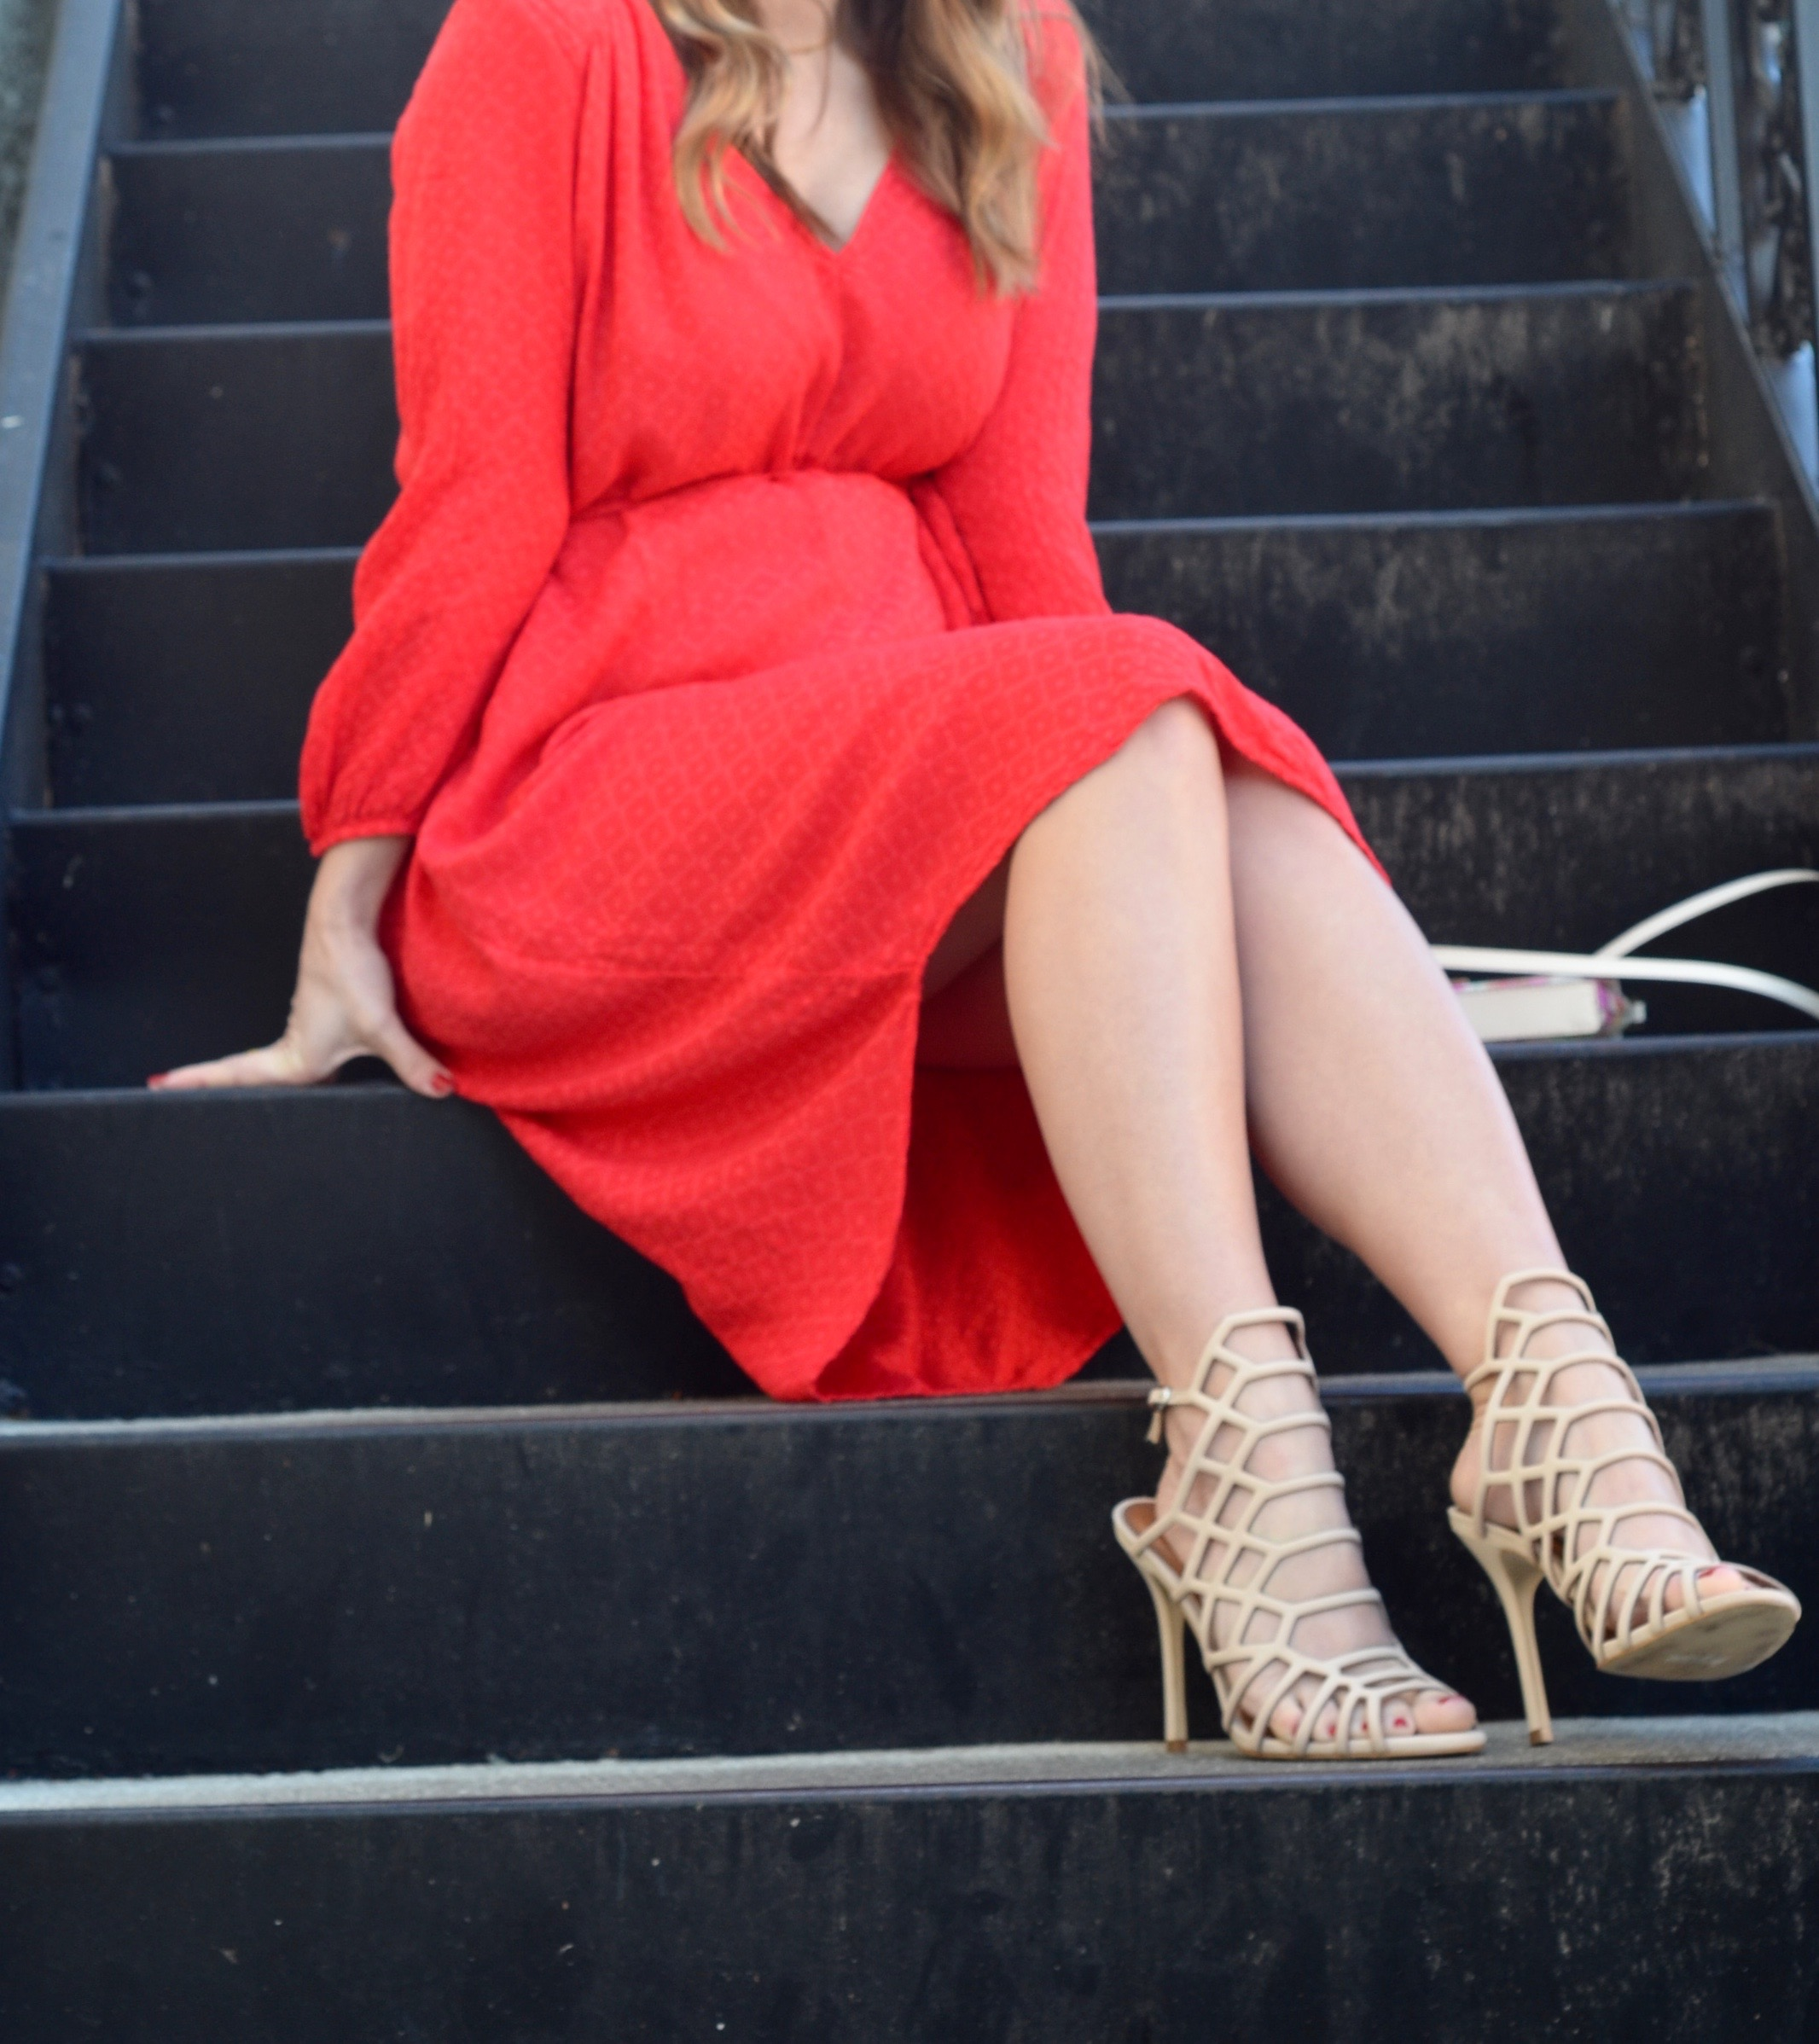 steve madden slither nude heels red dress outfit